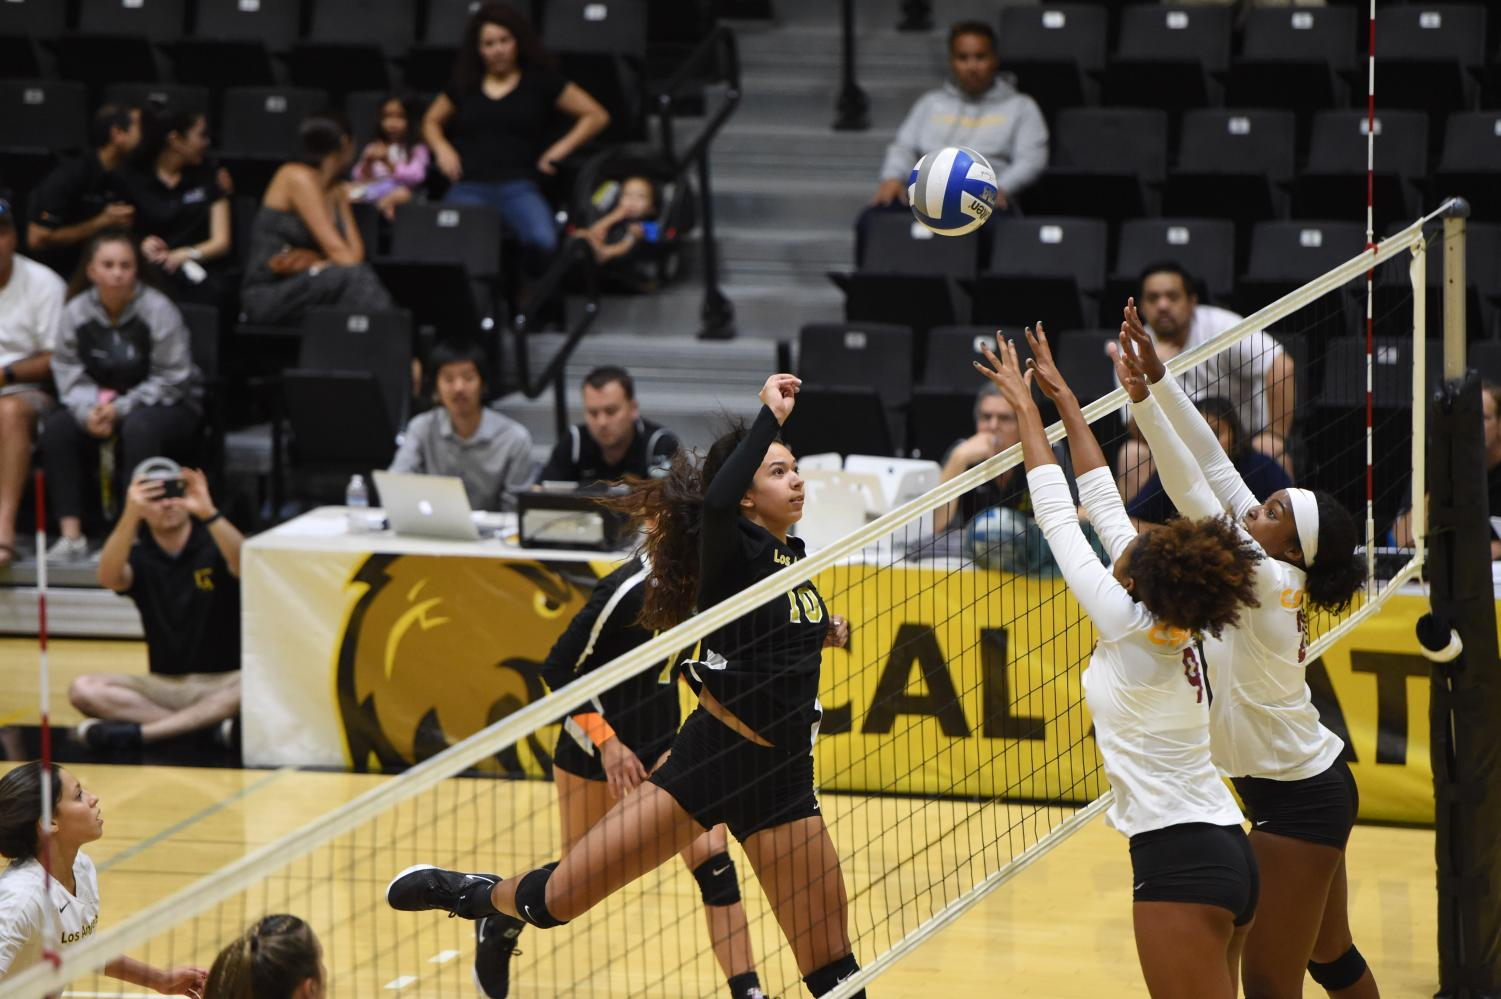 Victoria Duarte attempts to spike the ball against Cal State Dominguez Hills. Cal State LA defeated the toros 3-1.